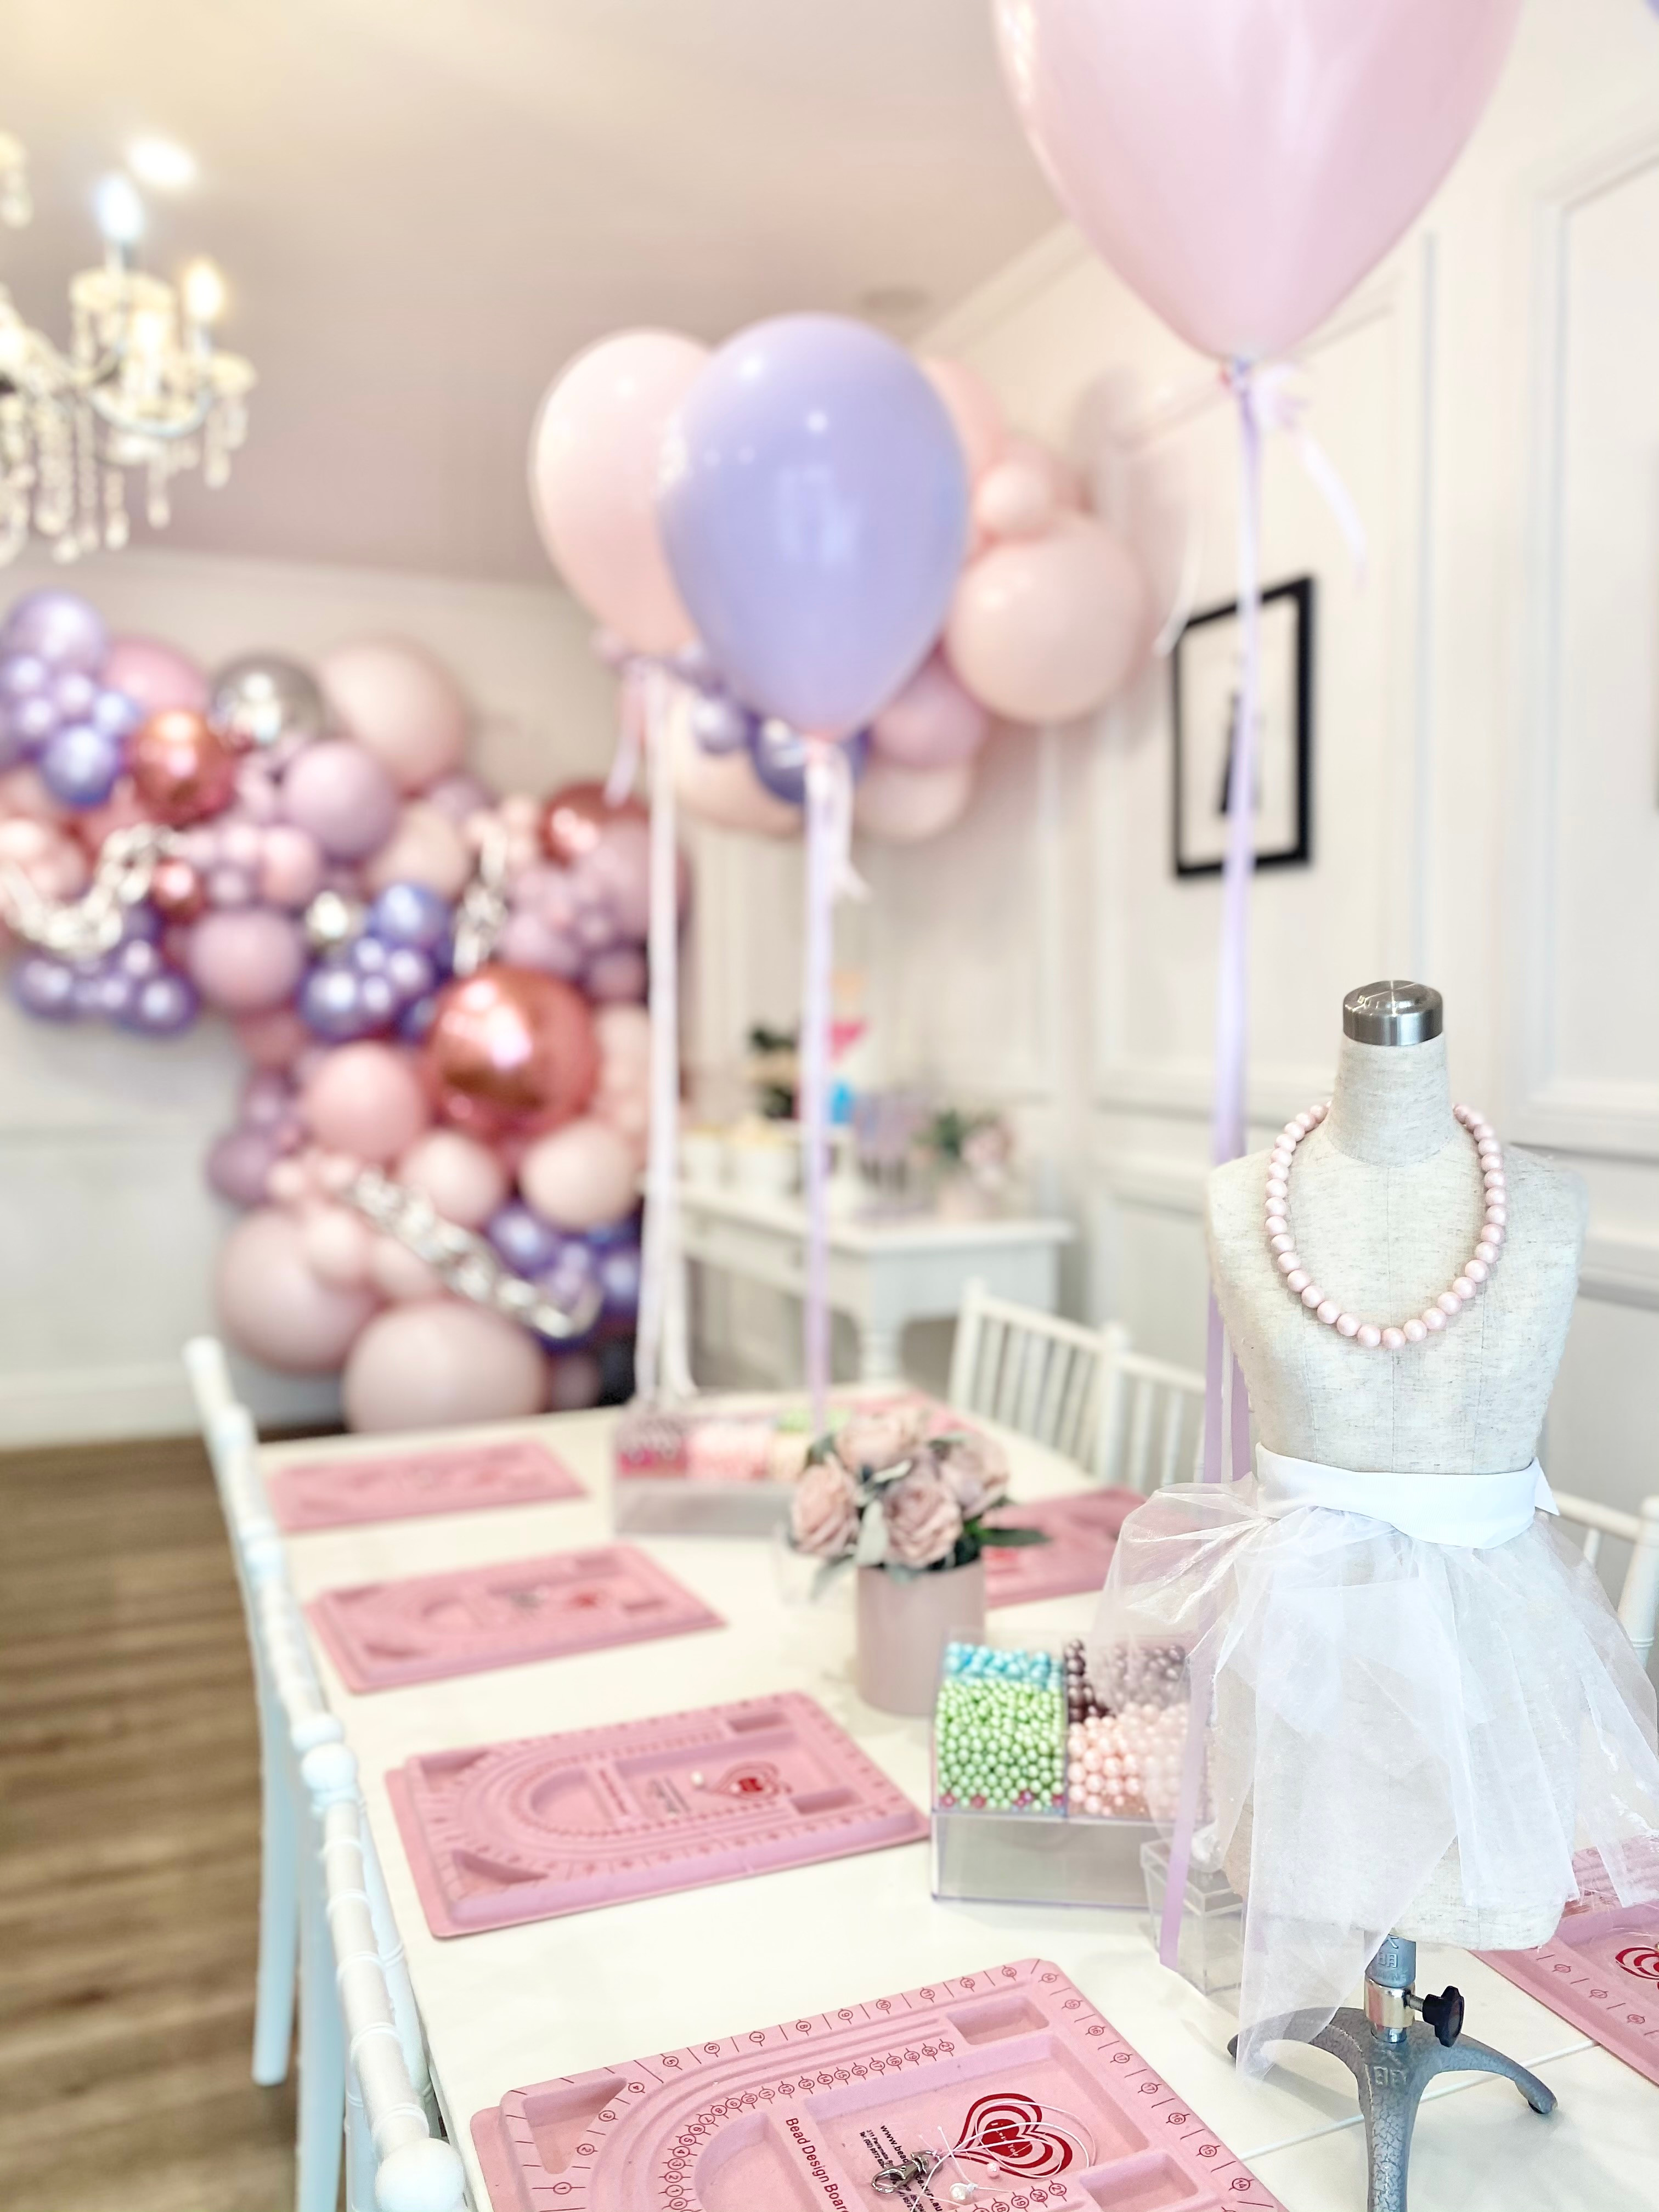 Ultimate Jewellery Party $750 (+Gst)